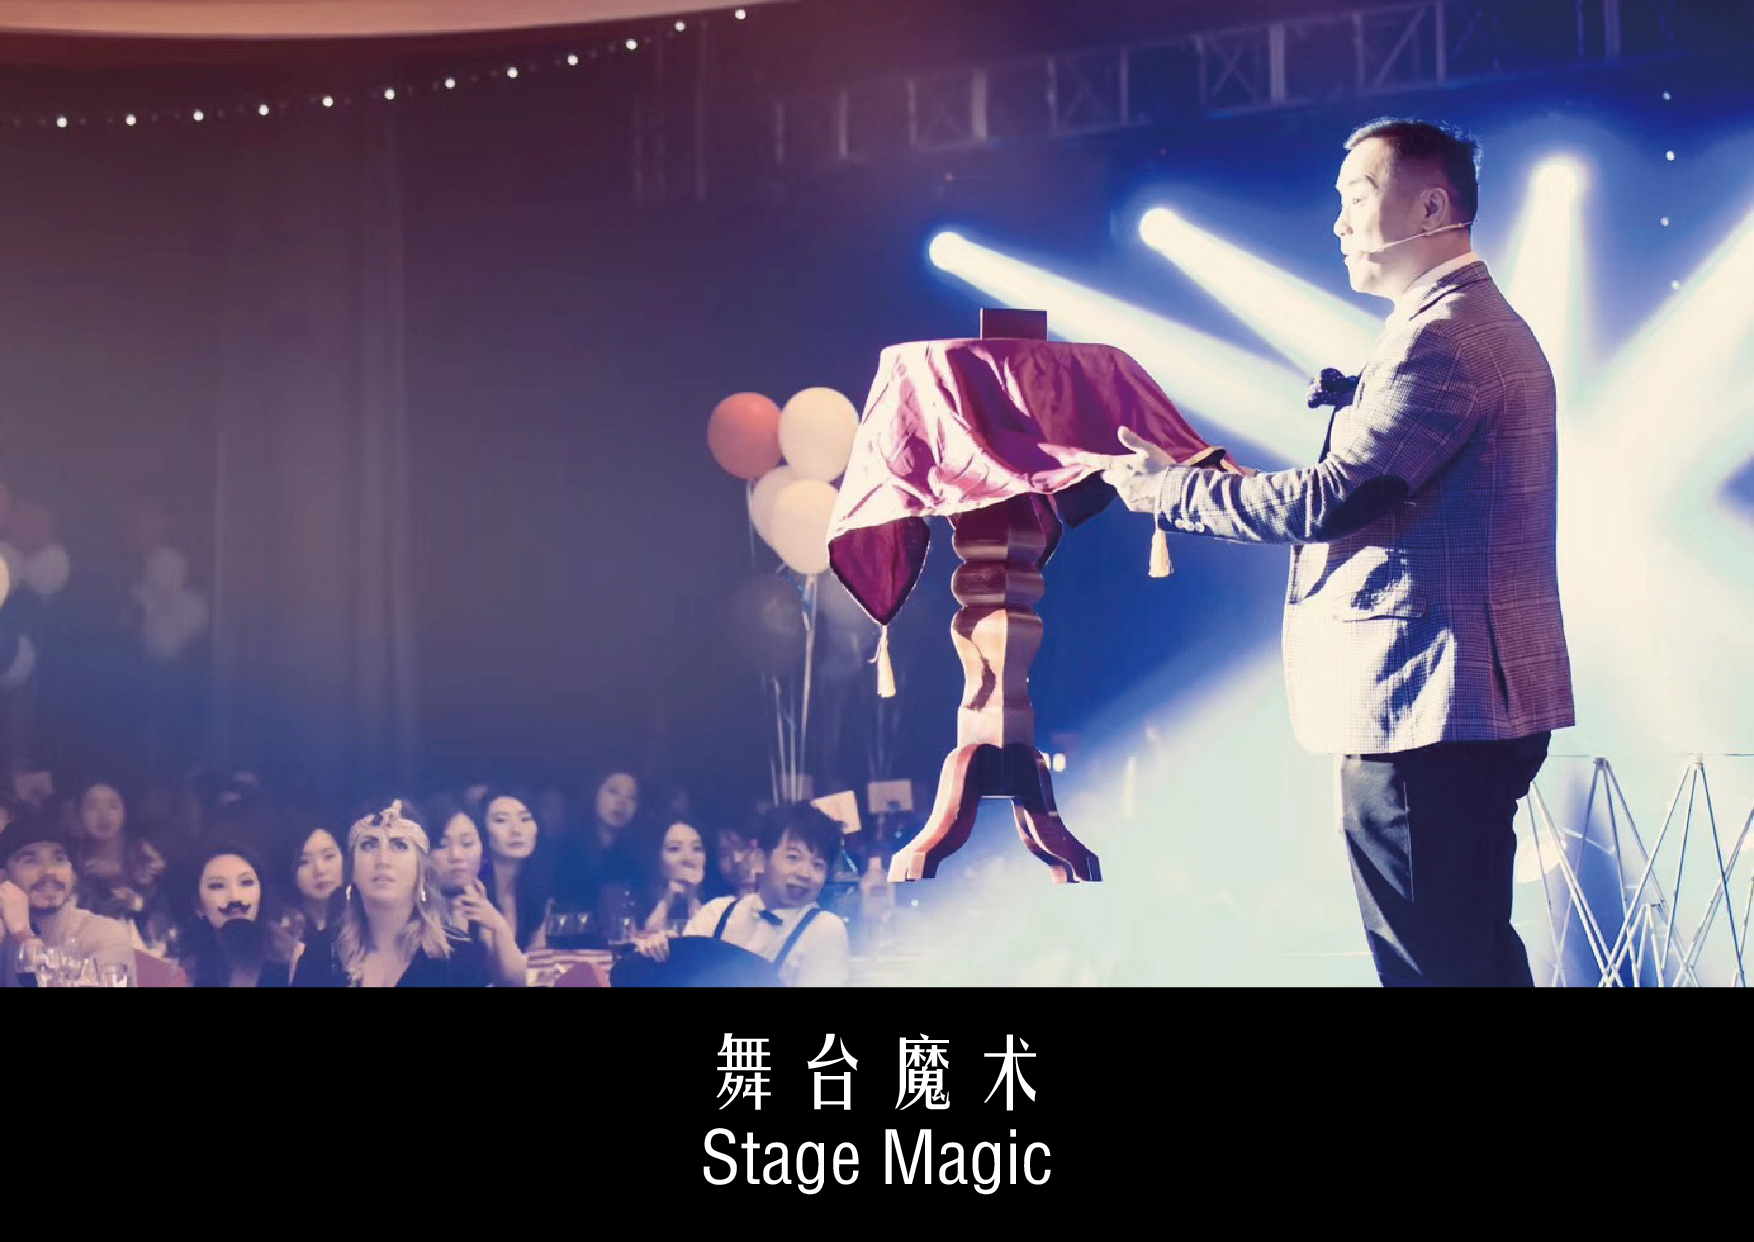 Blackstone Magic赋予传统的舞台魔术表演以不寻常的表演内容和形式,各种创意道具的使用结合魔术师富有经验的表演技巧,不仅仅可以为活动现场创造出夺人眼球的魔幻瞬间,也可以成为引出重要环节的点睛之笔。Blackstone Magic brings new life to traditional stage magic shows by means of a wide range of innovative props combined with magicians' sleights of hand, which can not only create miraculous moments, but also usher in the highlights of the event.  人数:50-1000人 Number of audience: 50-1000  适合活动类型:宴会,发布会,论坛,大型盛典  Types of events: banquets, conferences, forums, large-scale ceremonies